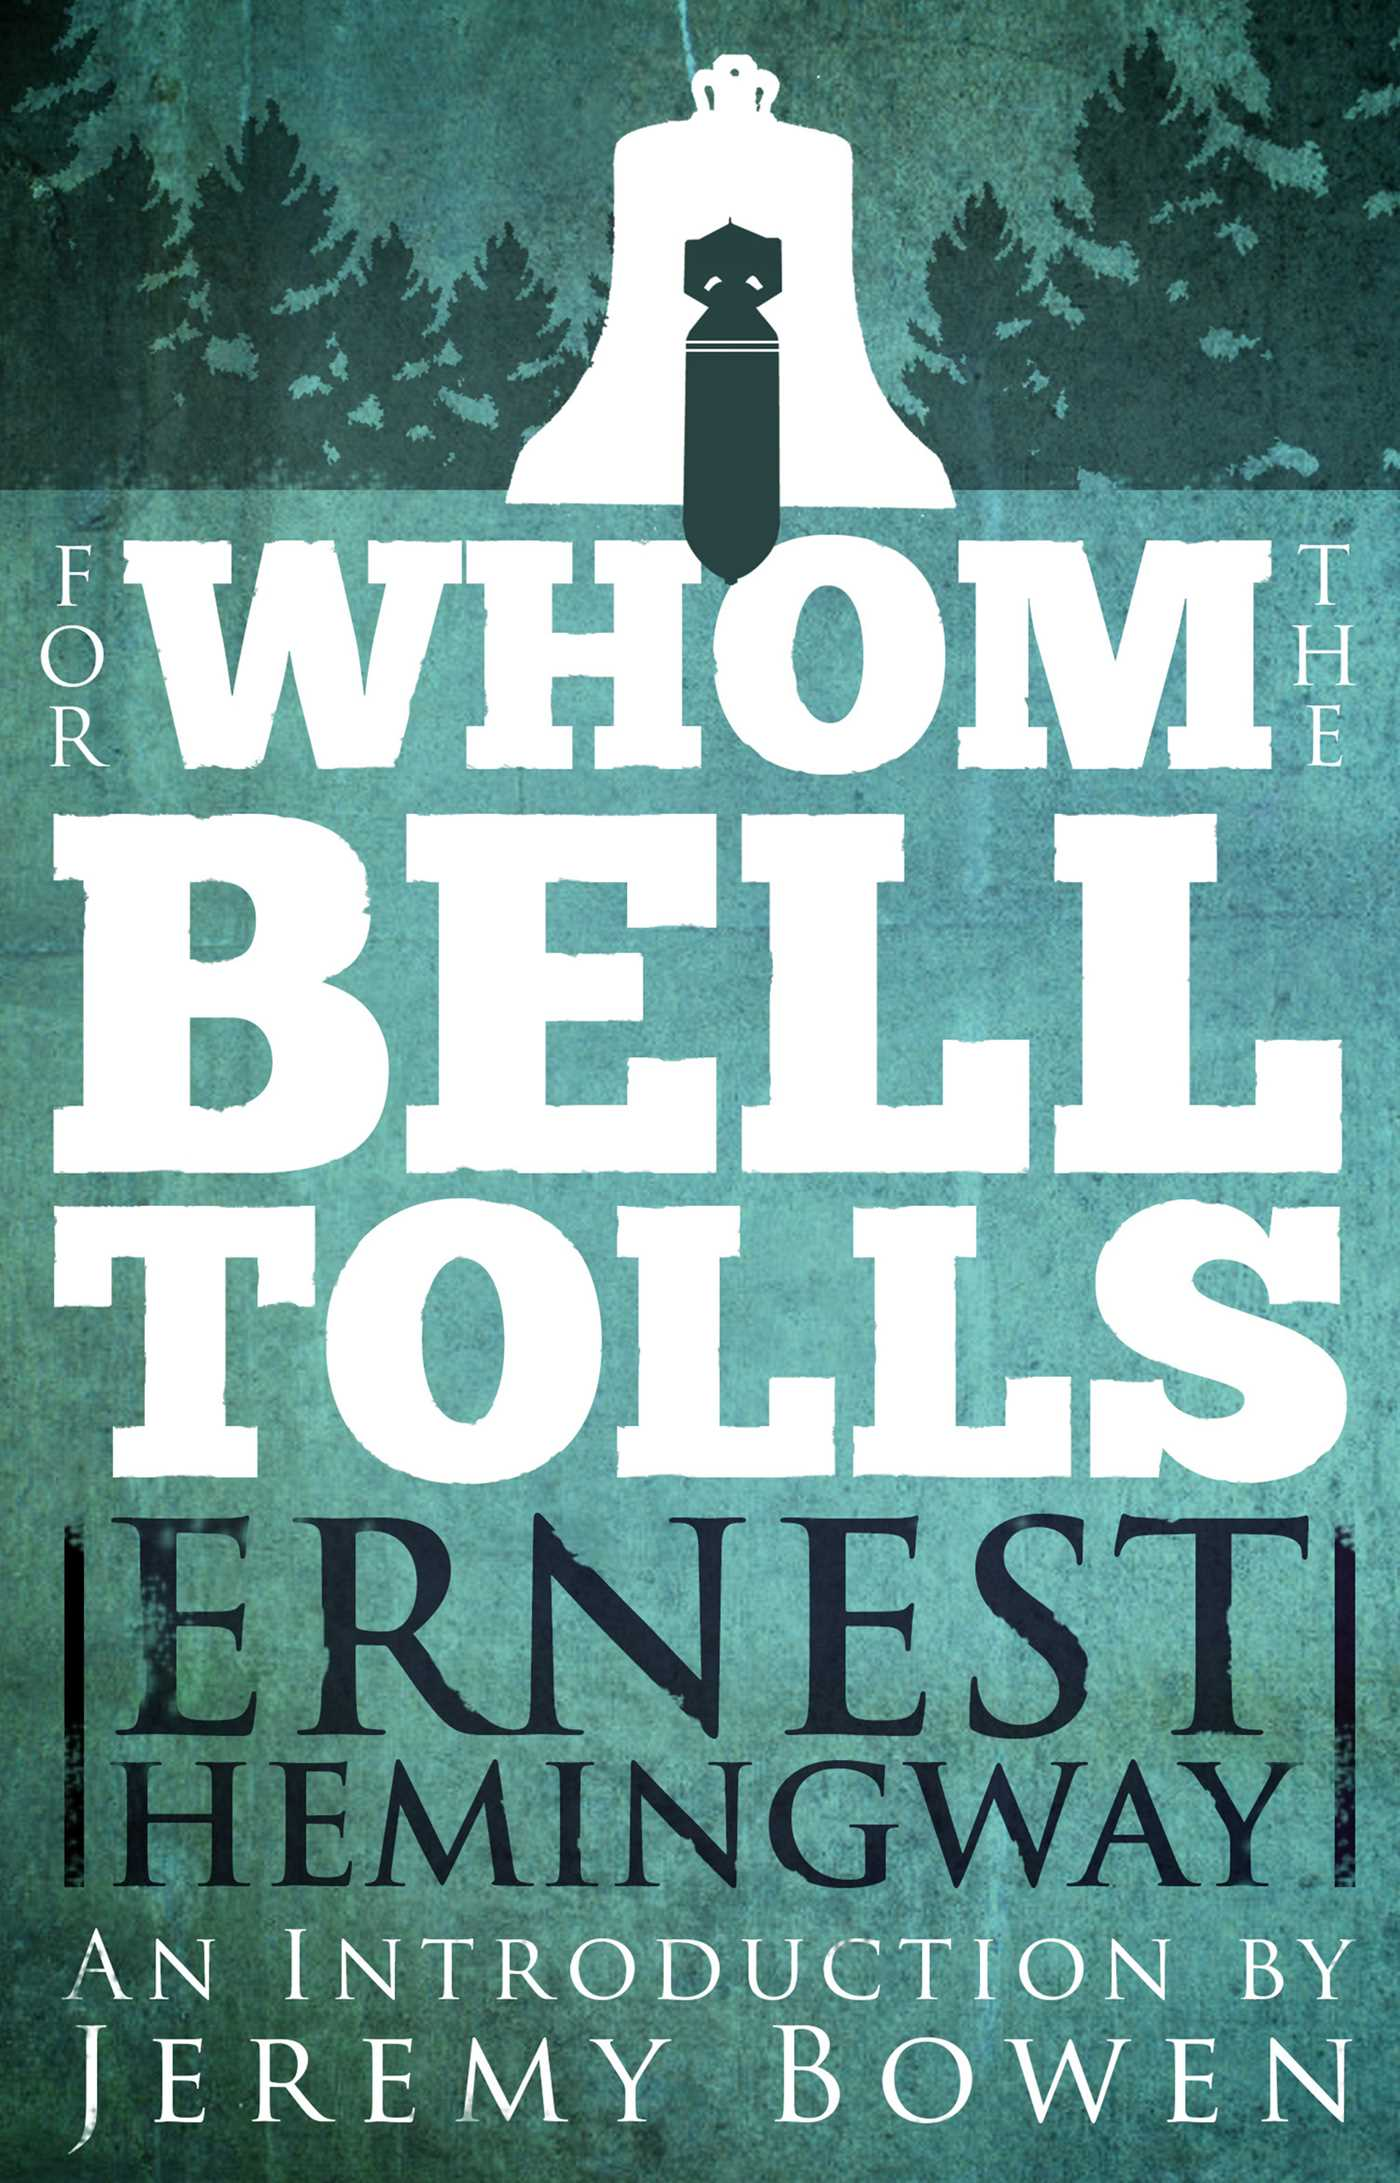 an analysis of for whom the bell tolls by ernest hemingway A thematic analysis of ernest hemingway 'for whom the bell tolls' including: loyalty, bravery, and gender roles.